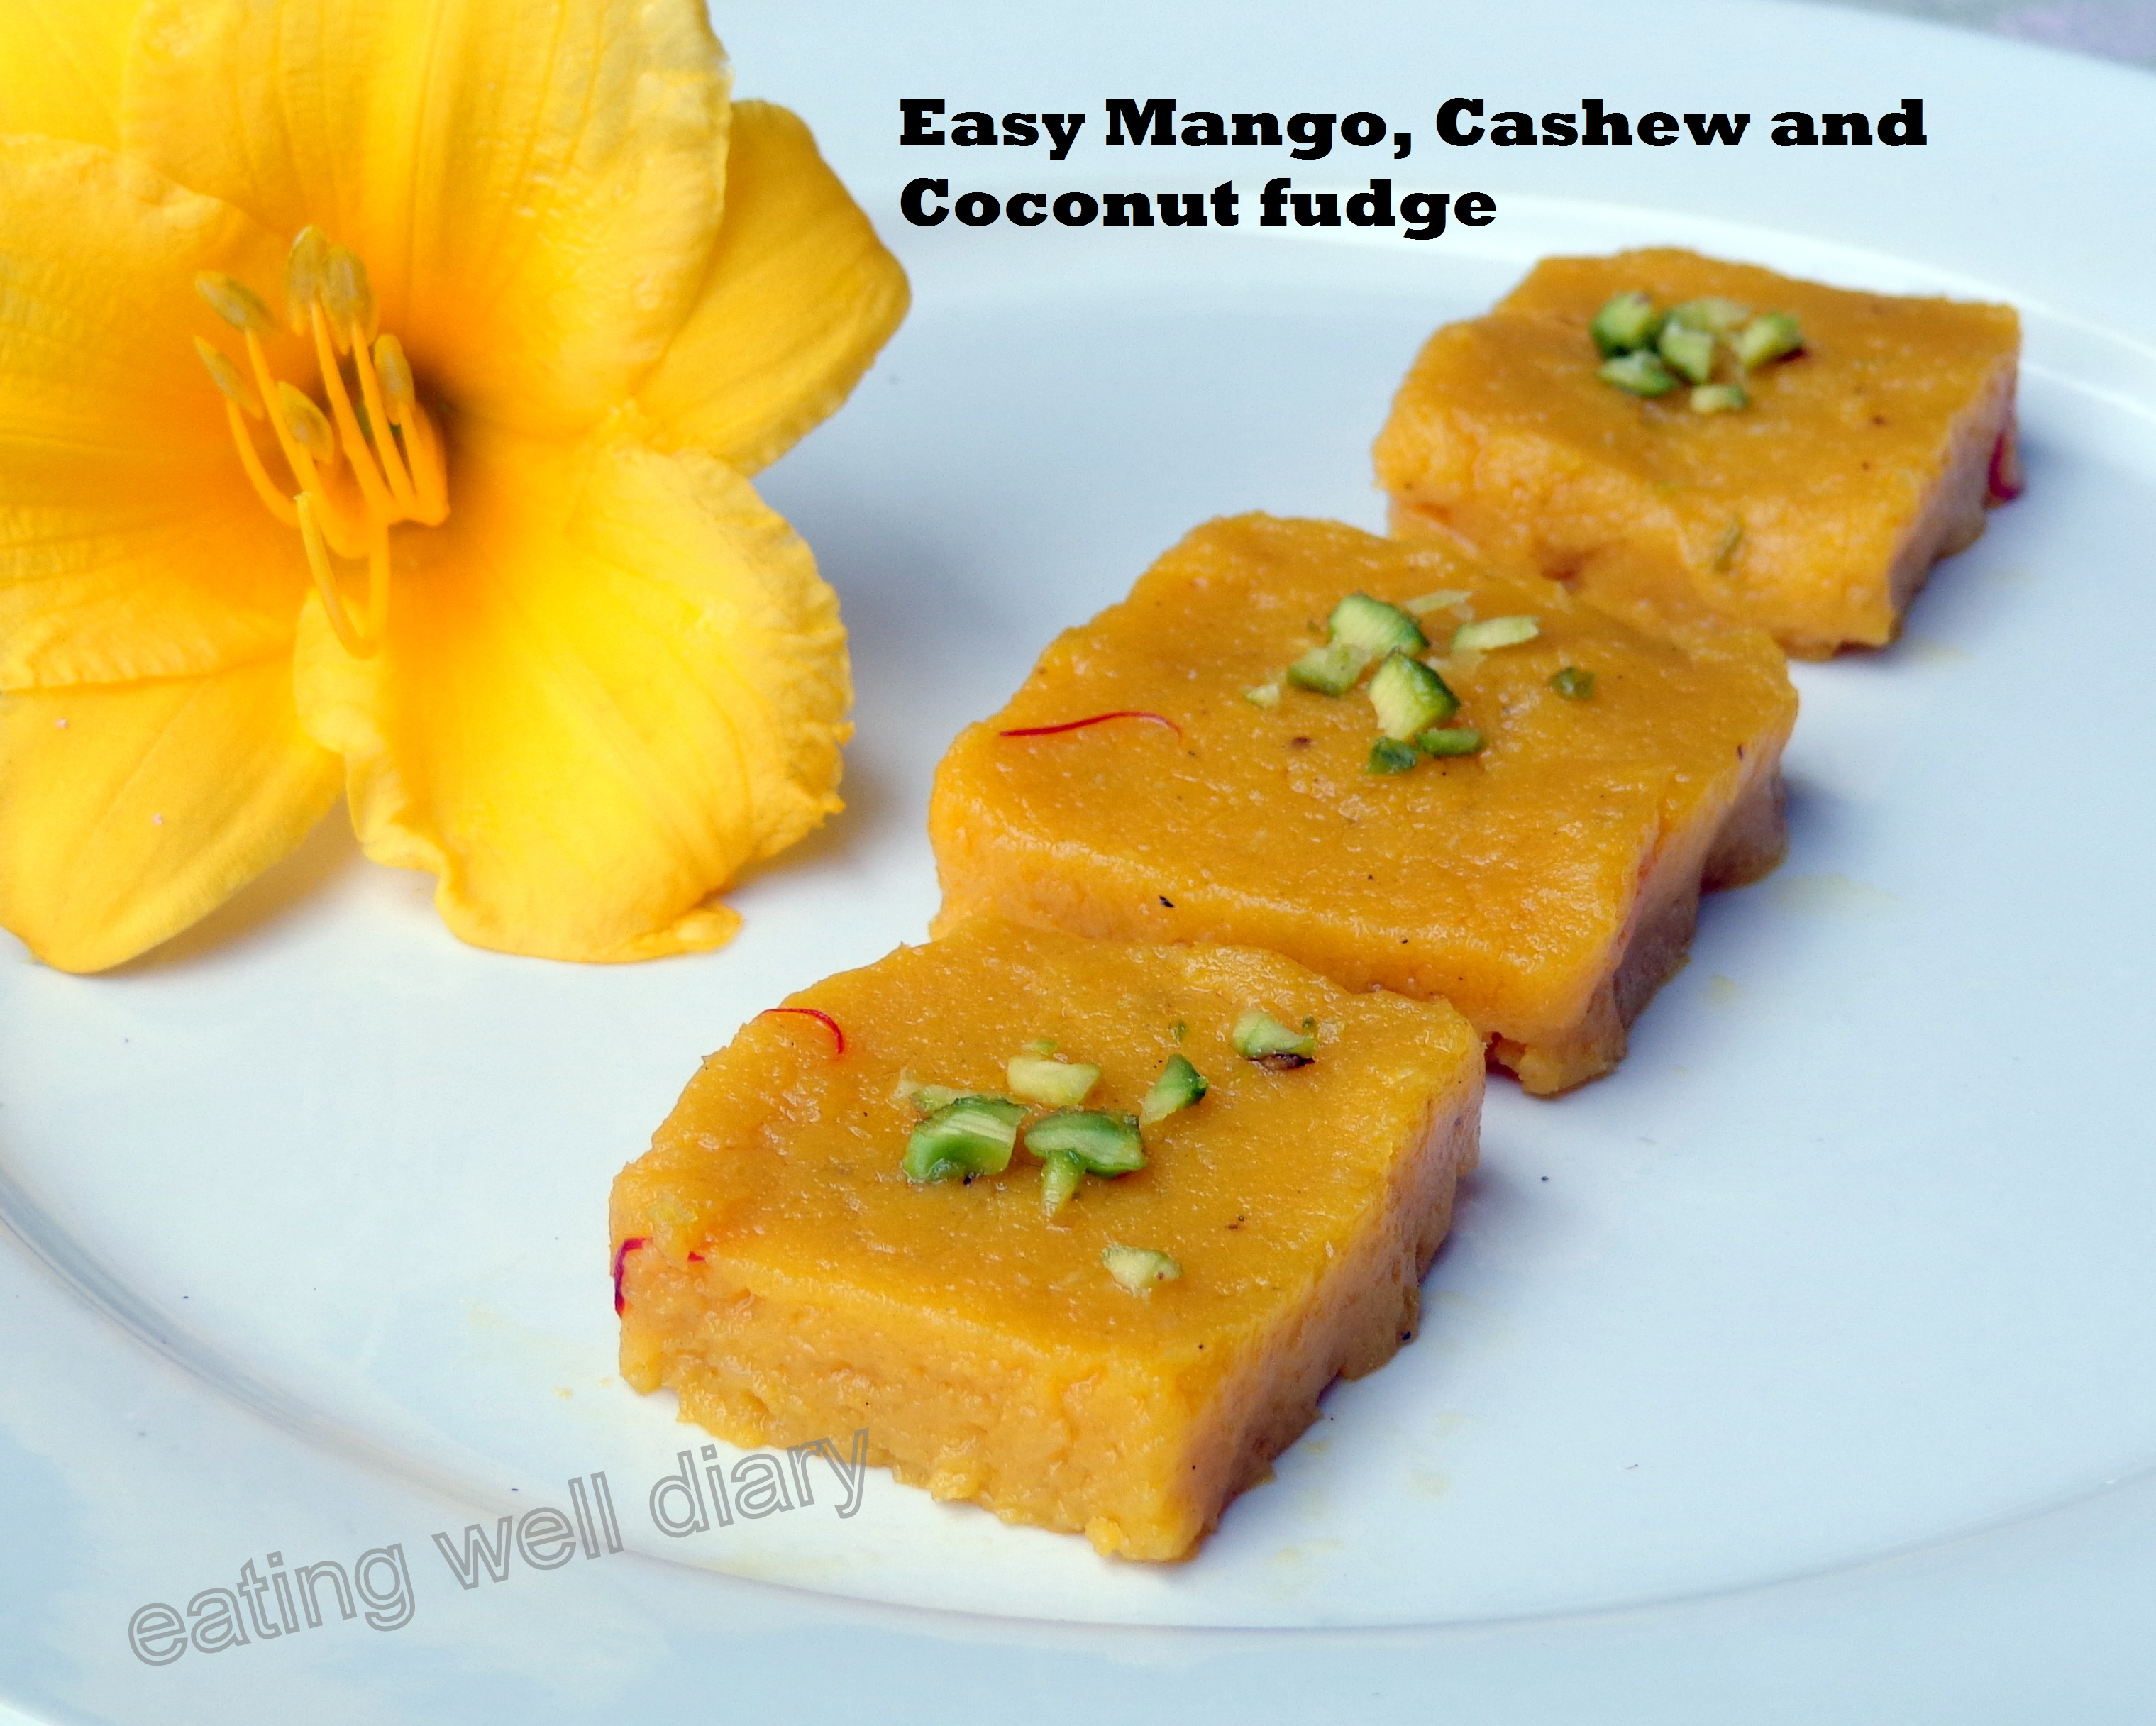 Easy Mango, Cashew and Coconut Halwa or Fudge